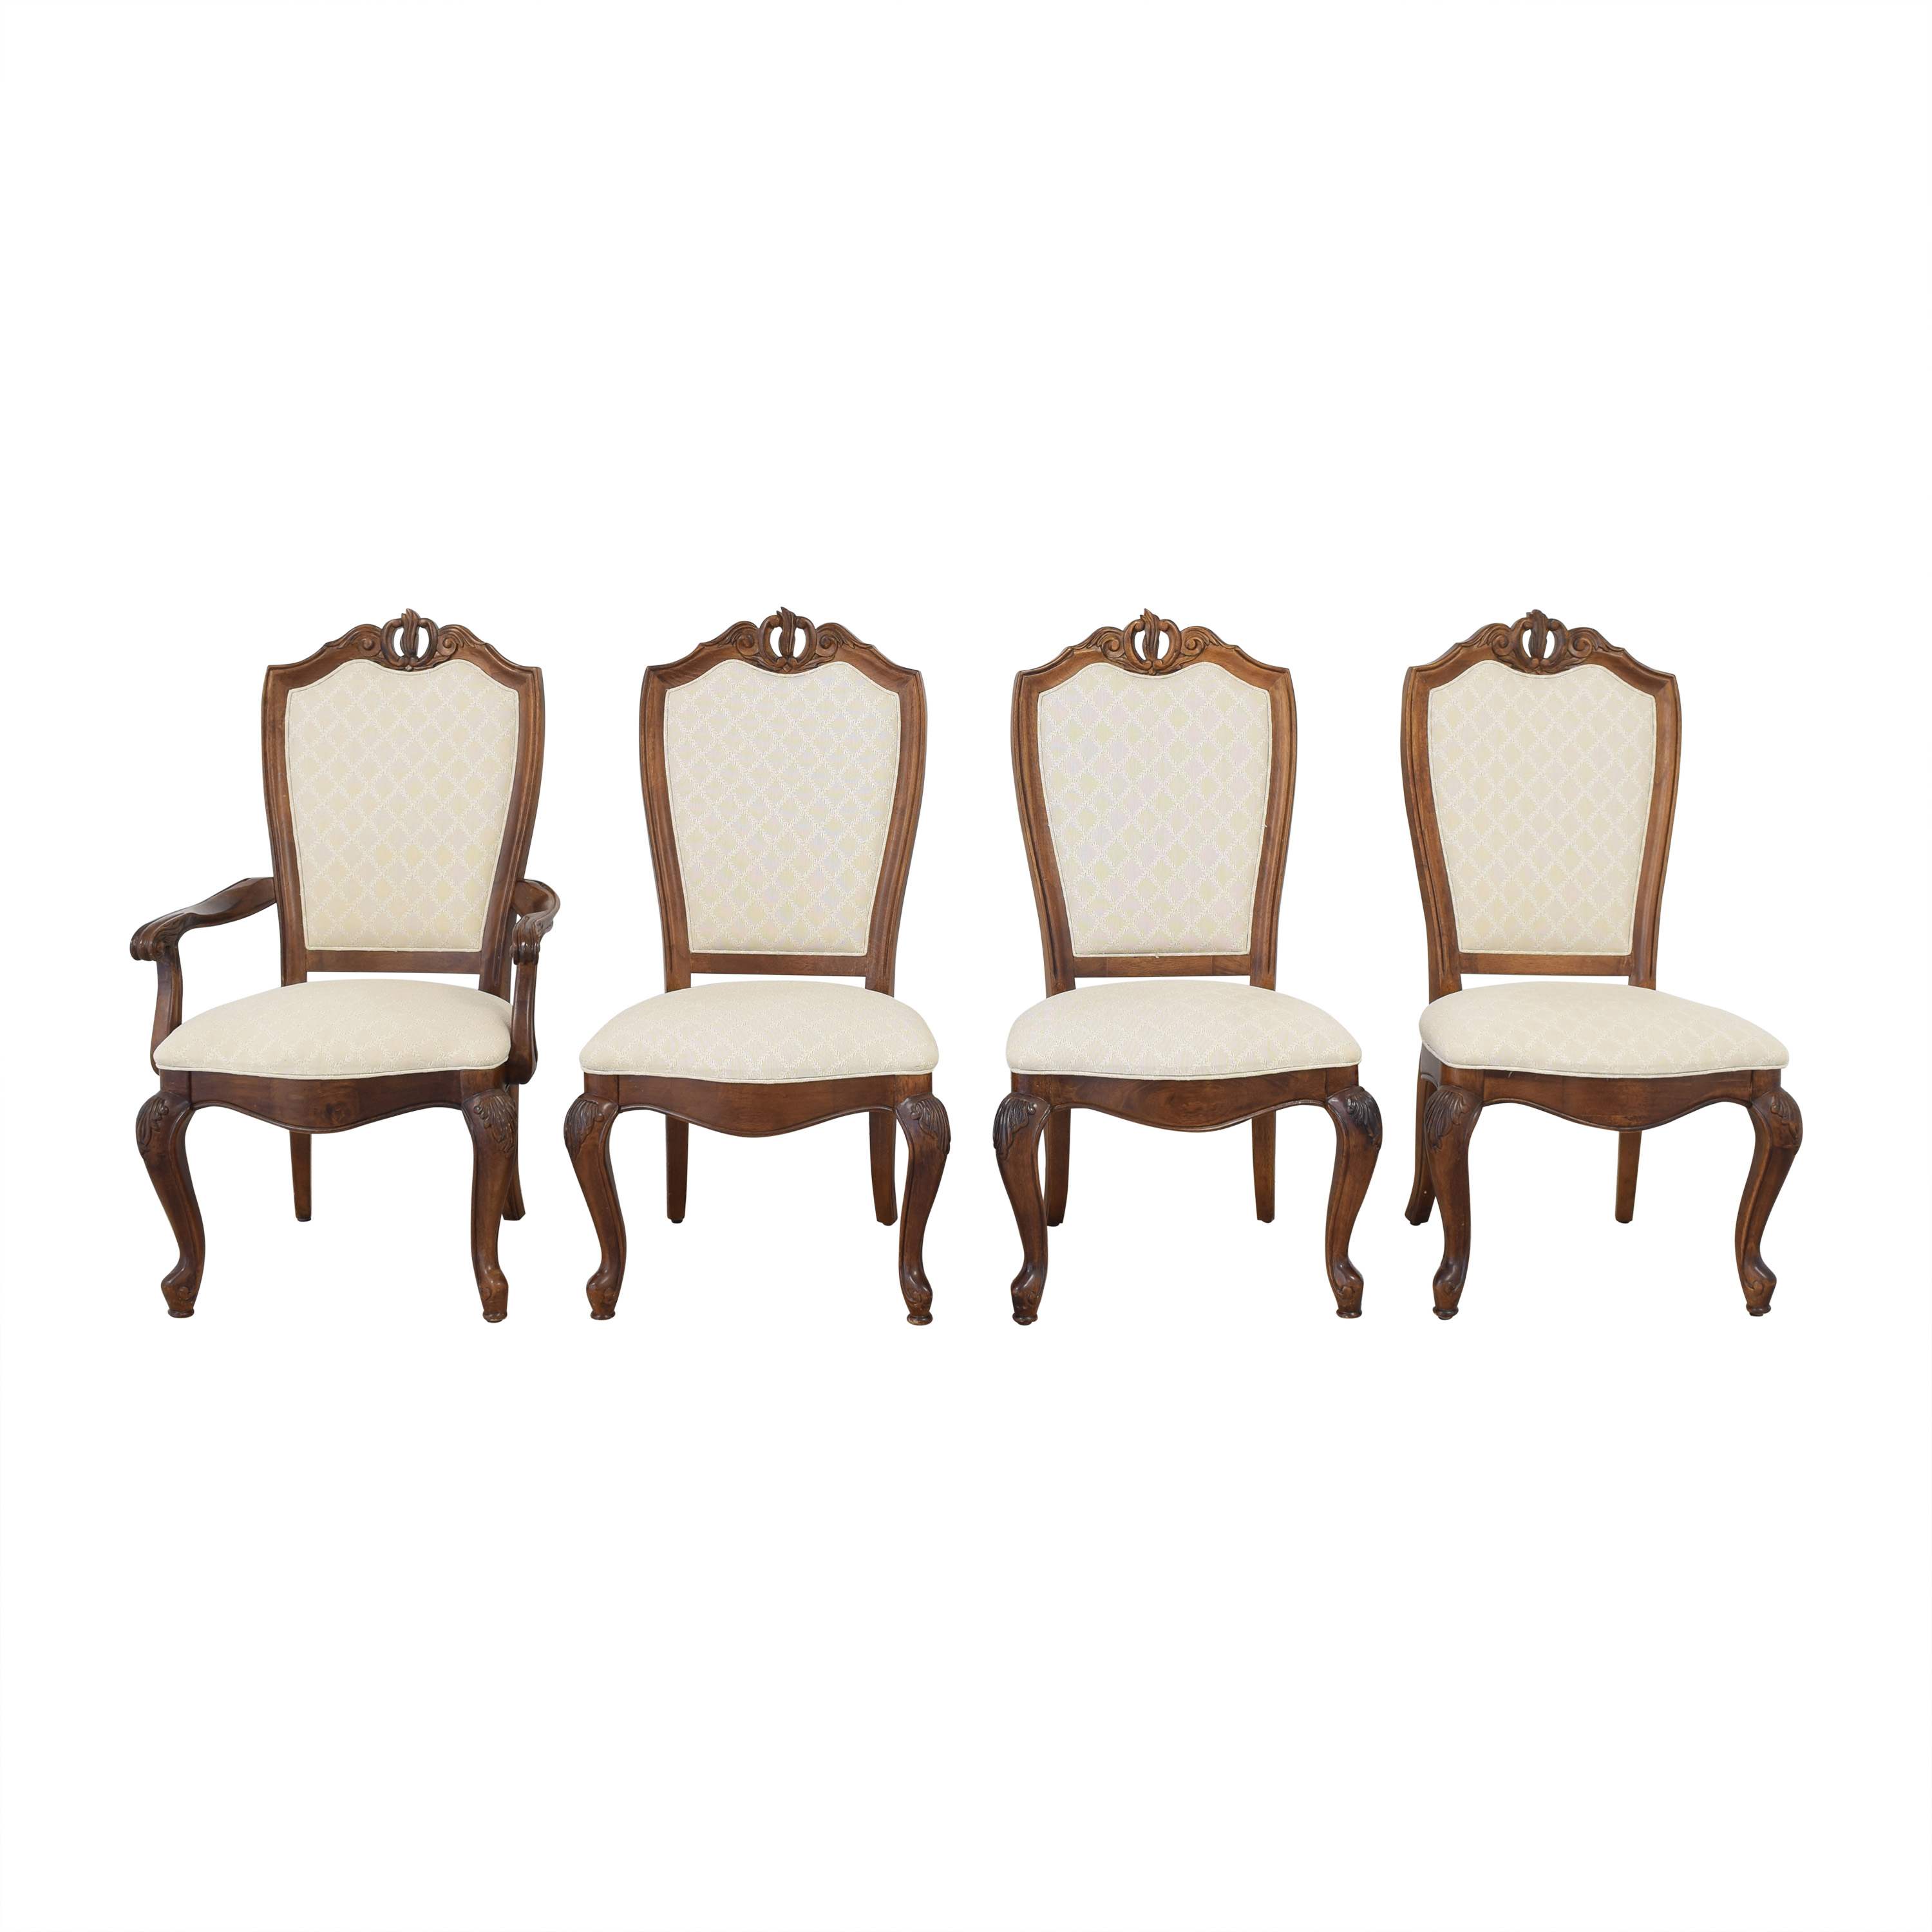 buy Bob Mackie for American Drew Dining Chairs American Drew Dining Chairs